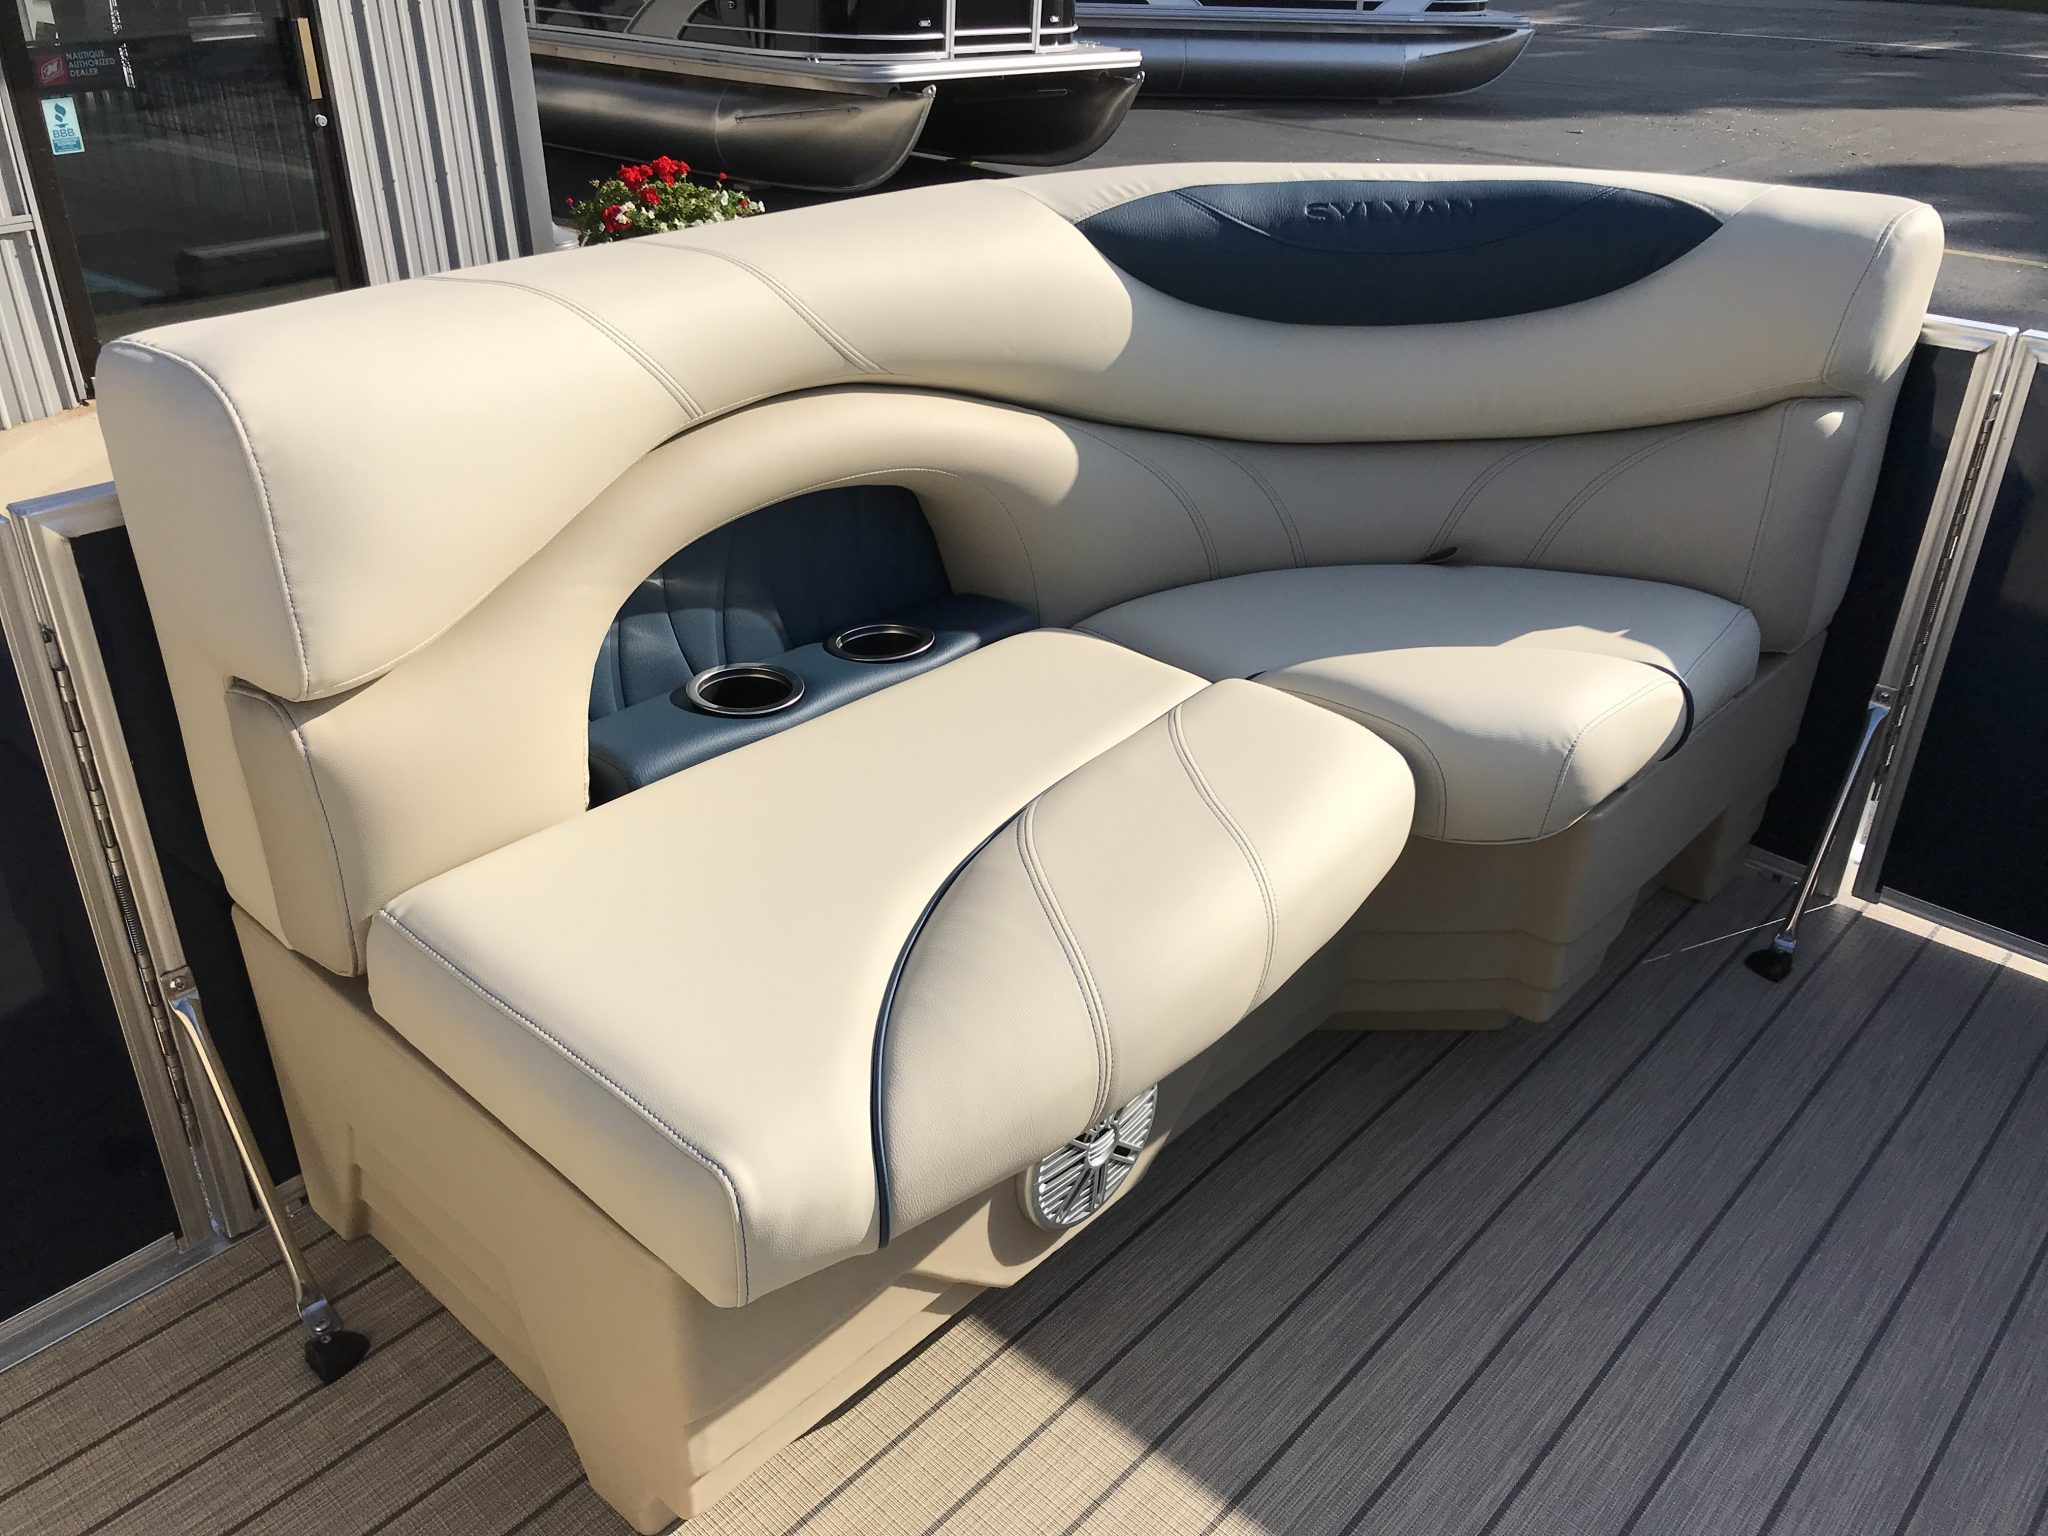 Sylvan 8520 Cruise-n-Fish Interior Cockpit Seating 4